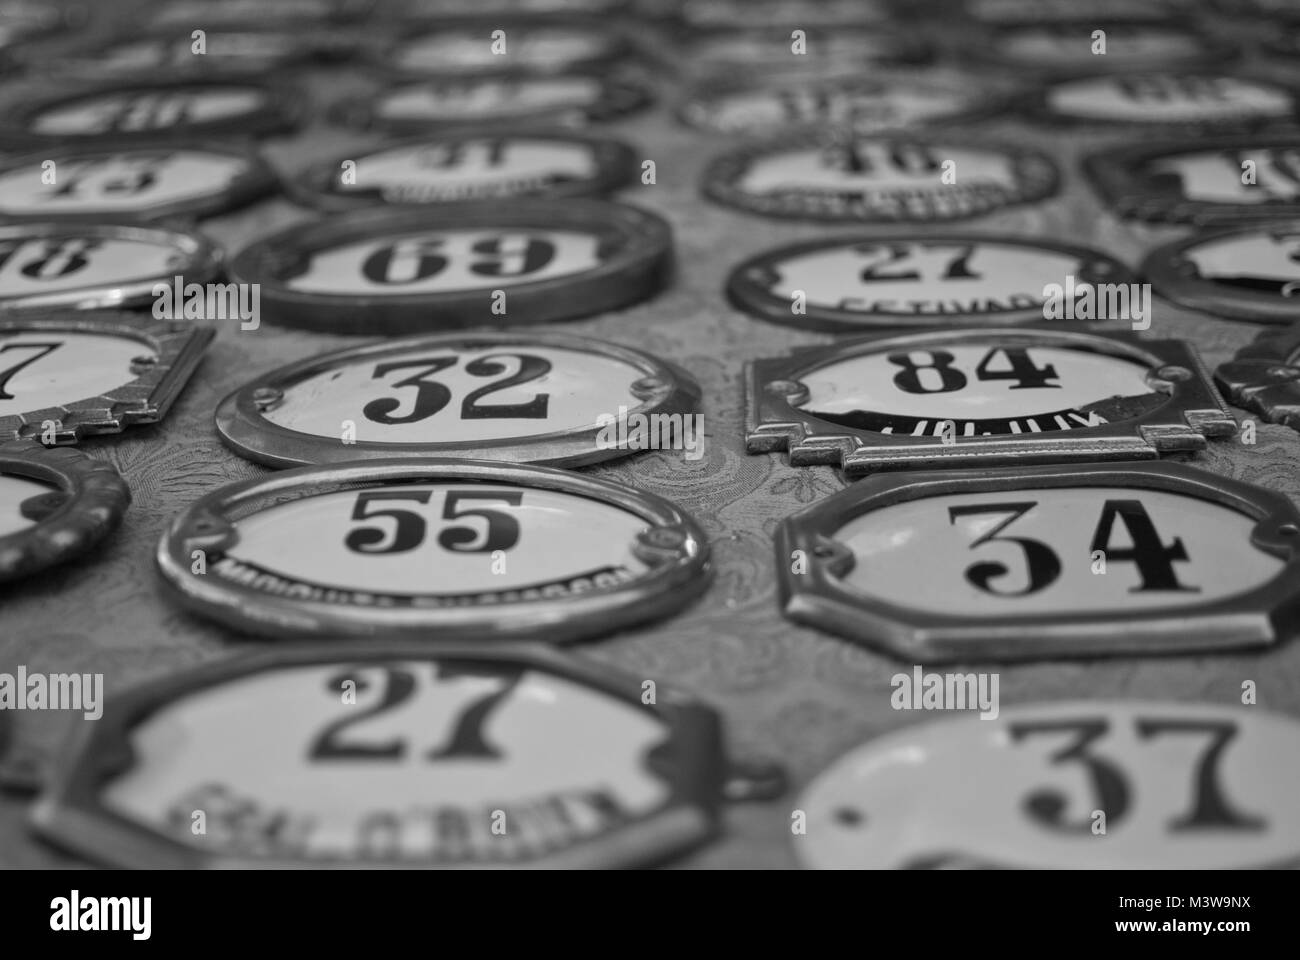 House number plaques arranged in lines on a table at a flea market in Buenos Aires, Argentina - Stock Image